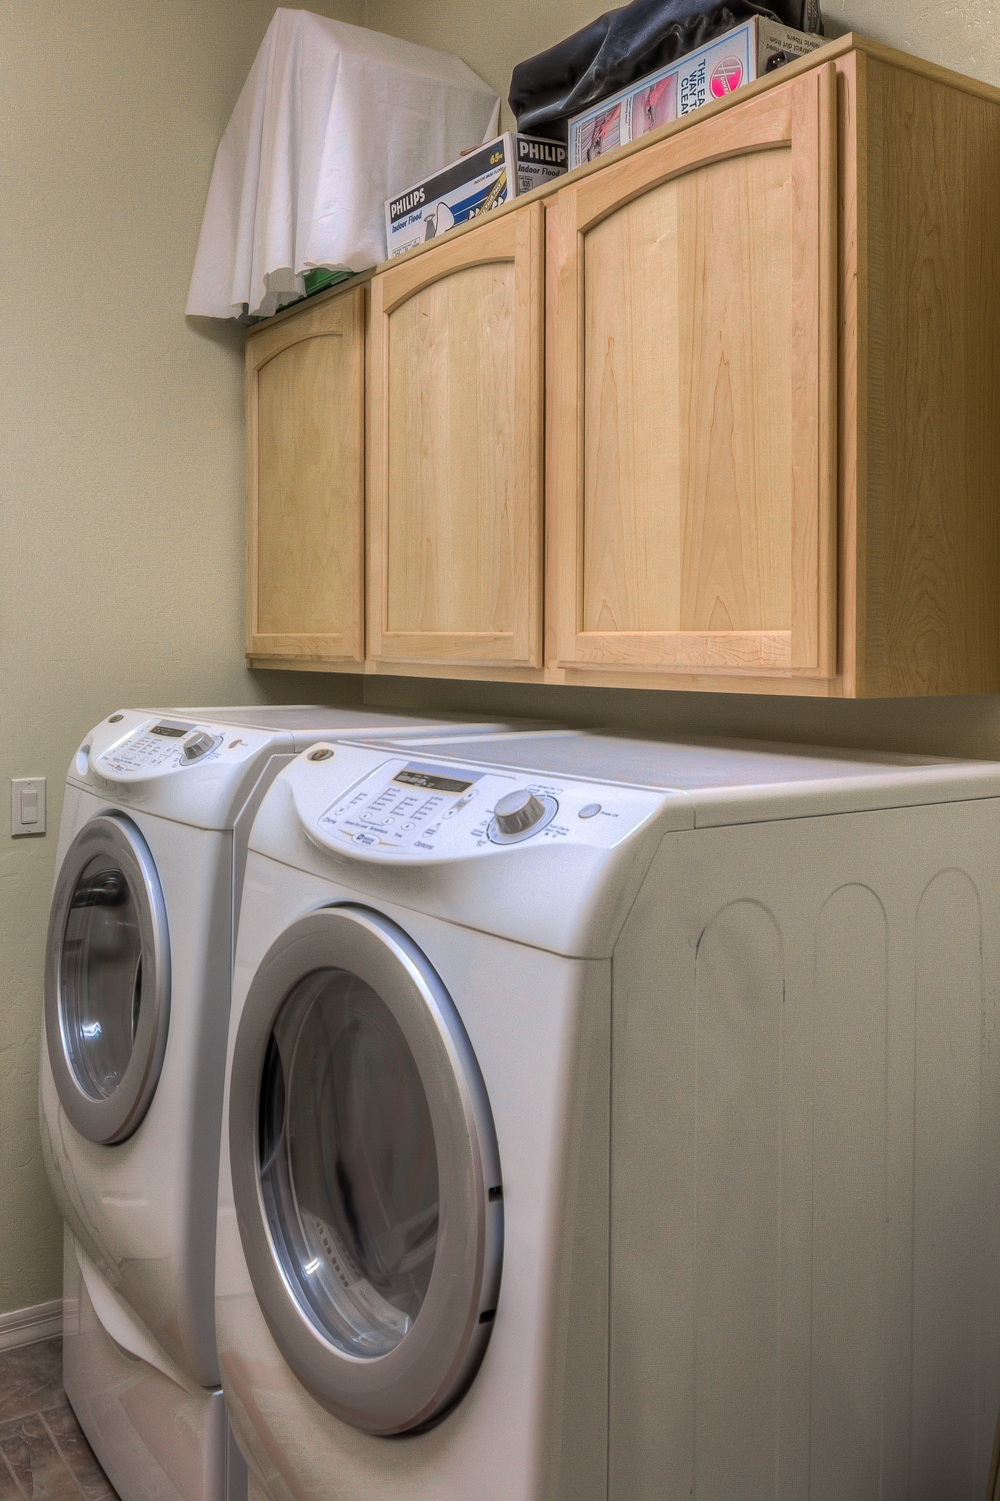 25 Laundry Room photo a.jpg